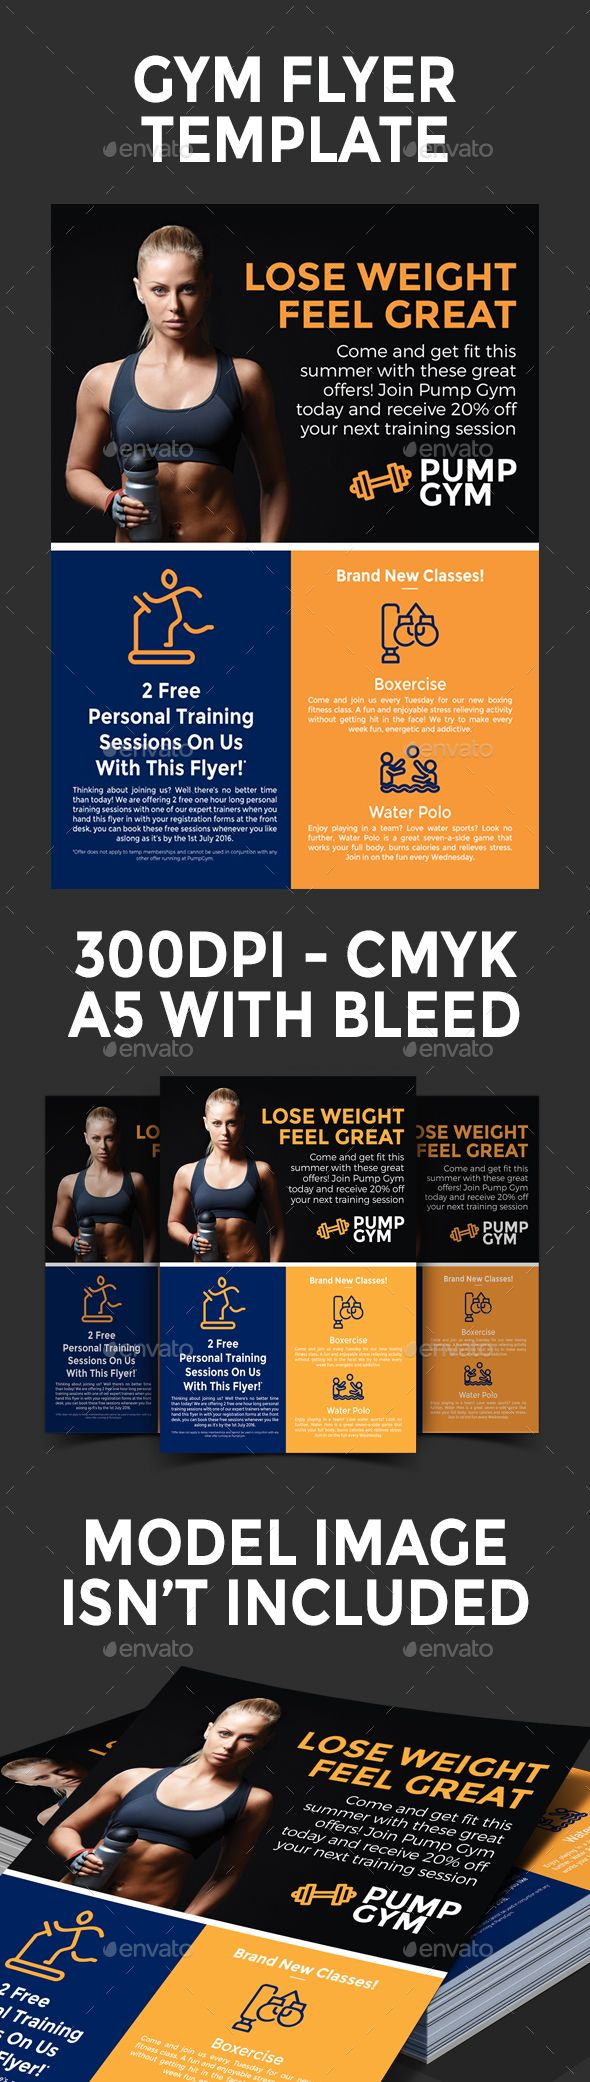 Gym Flyer Design Template Sports Events Flyer Template Psd